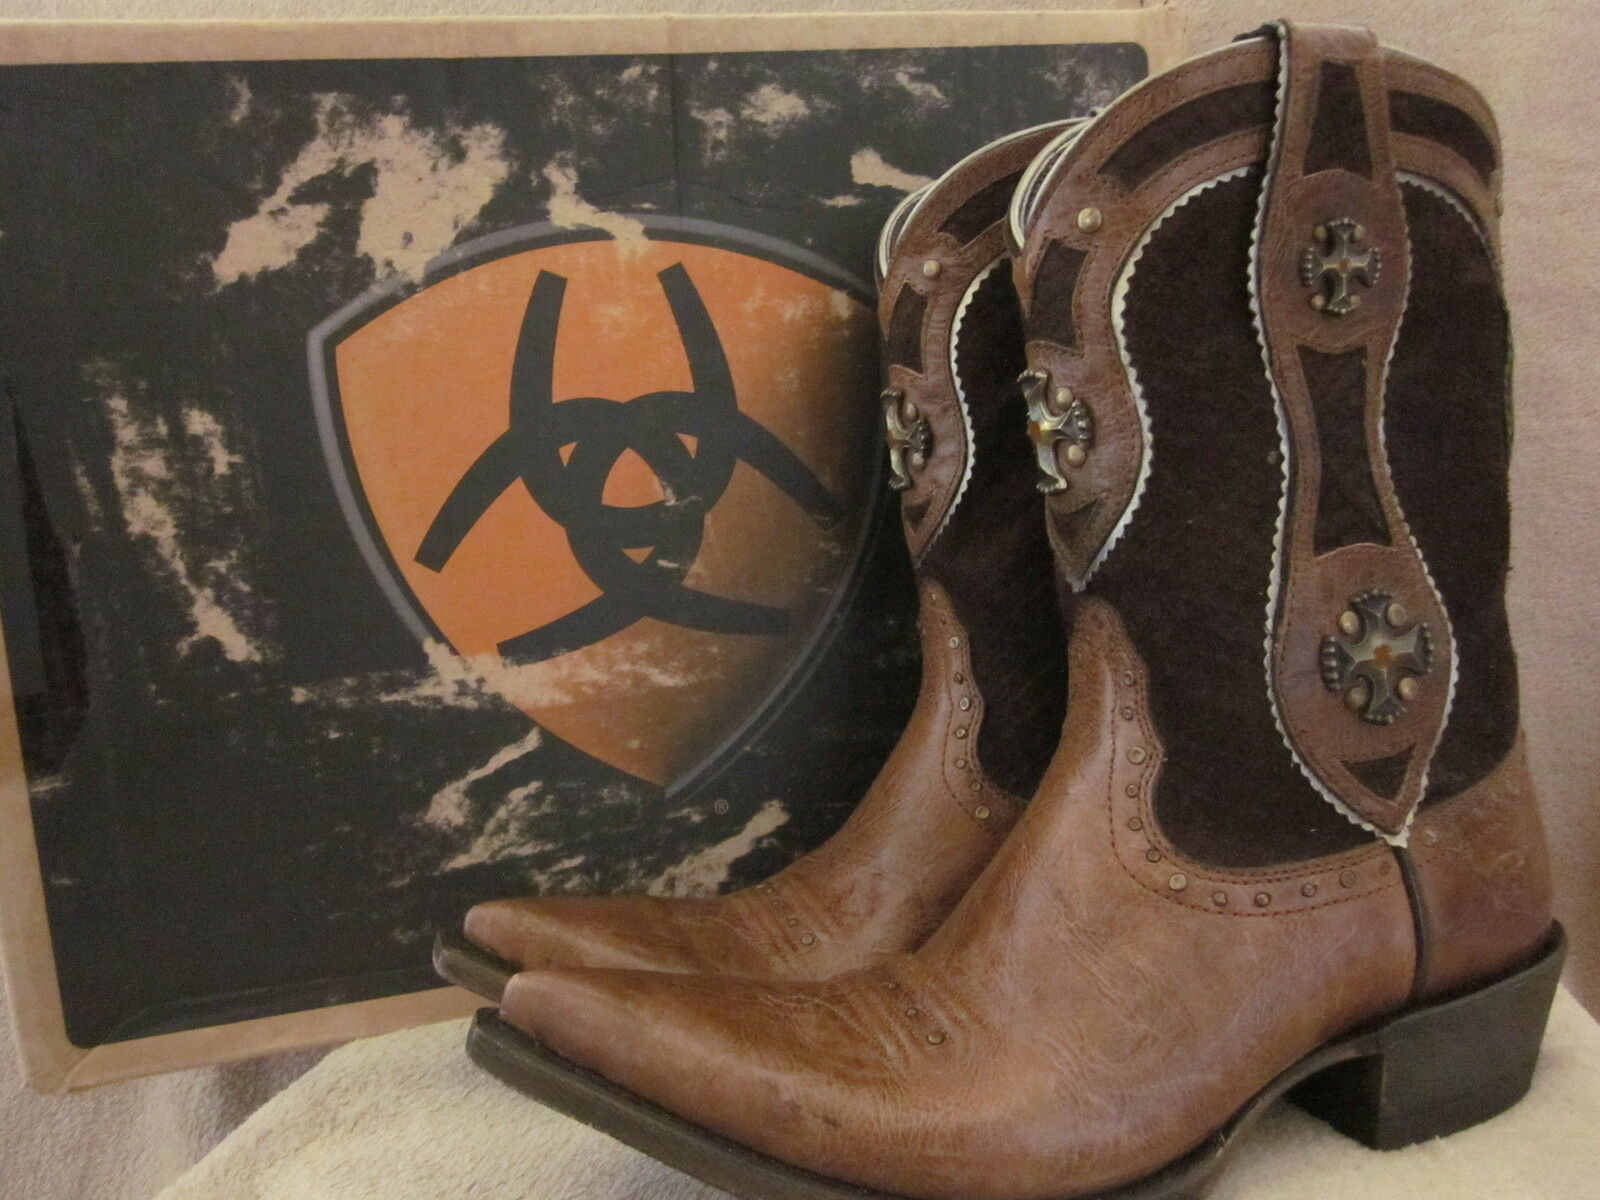 ARIAT Desperado Cowboy Dry Creek Brown Leather Boots Shoes US 6.5 M NWB